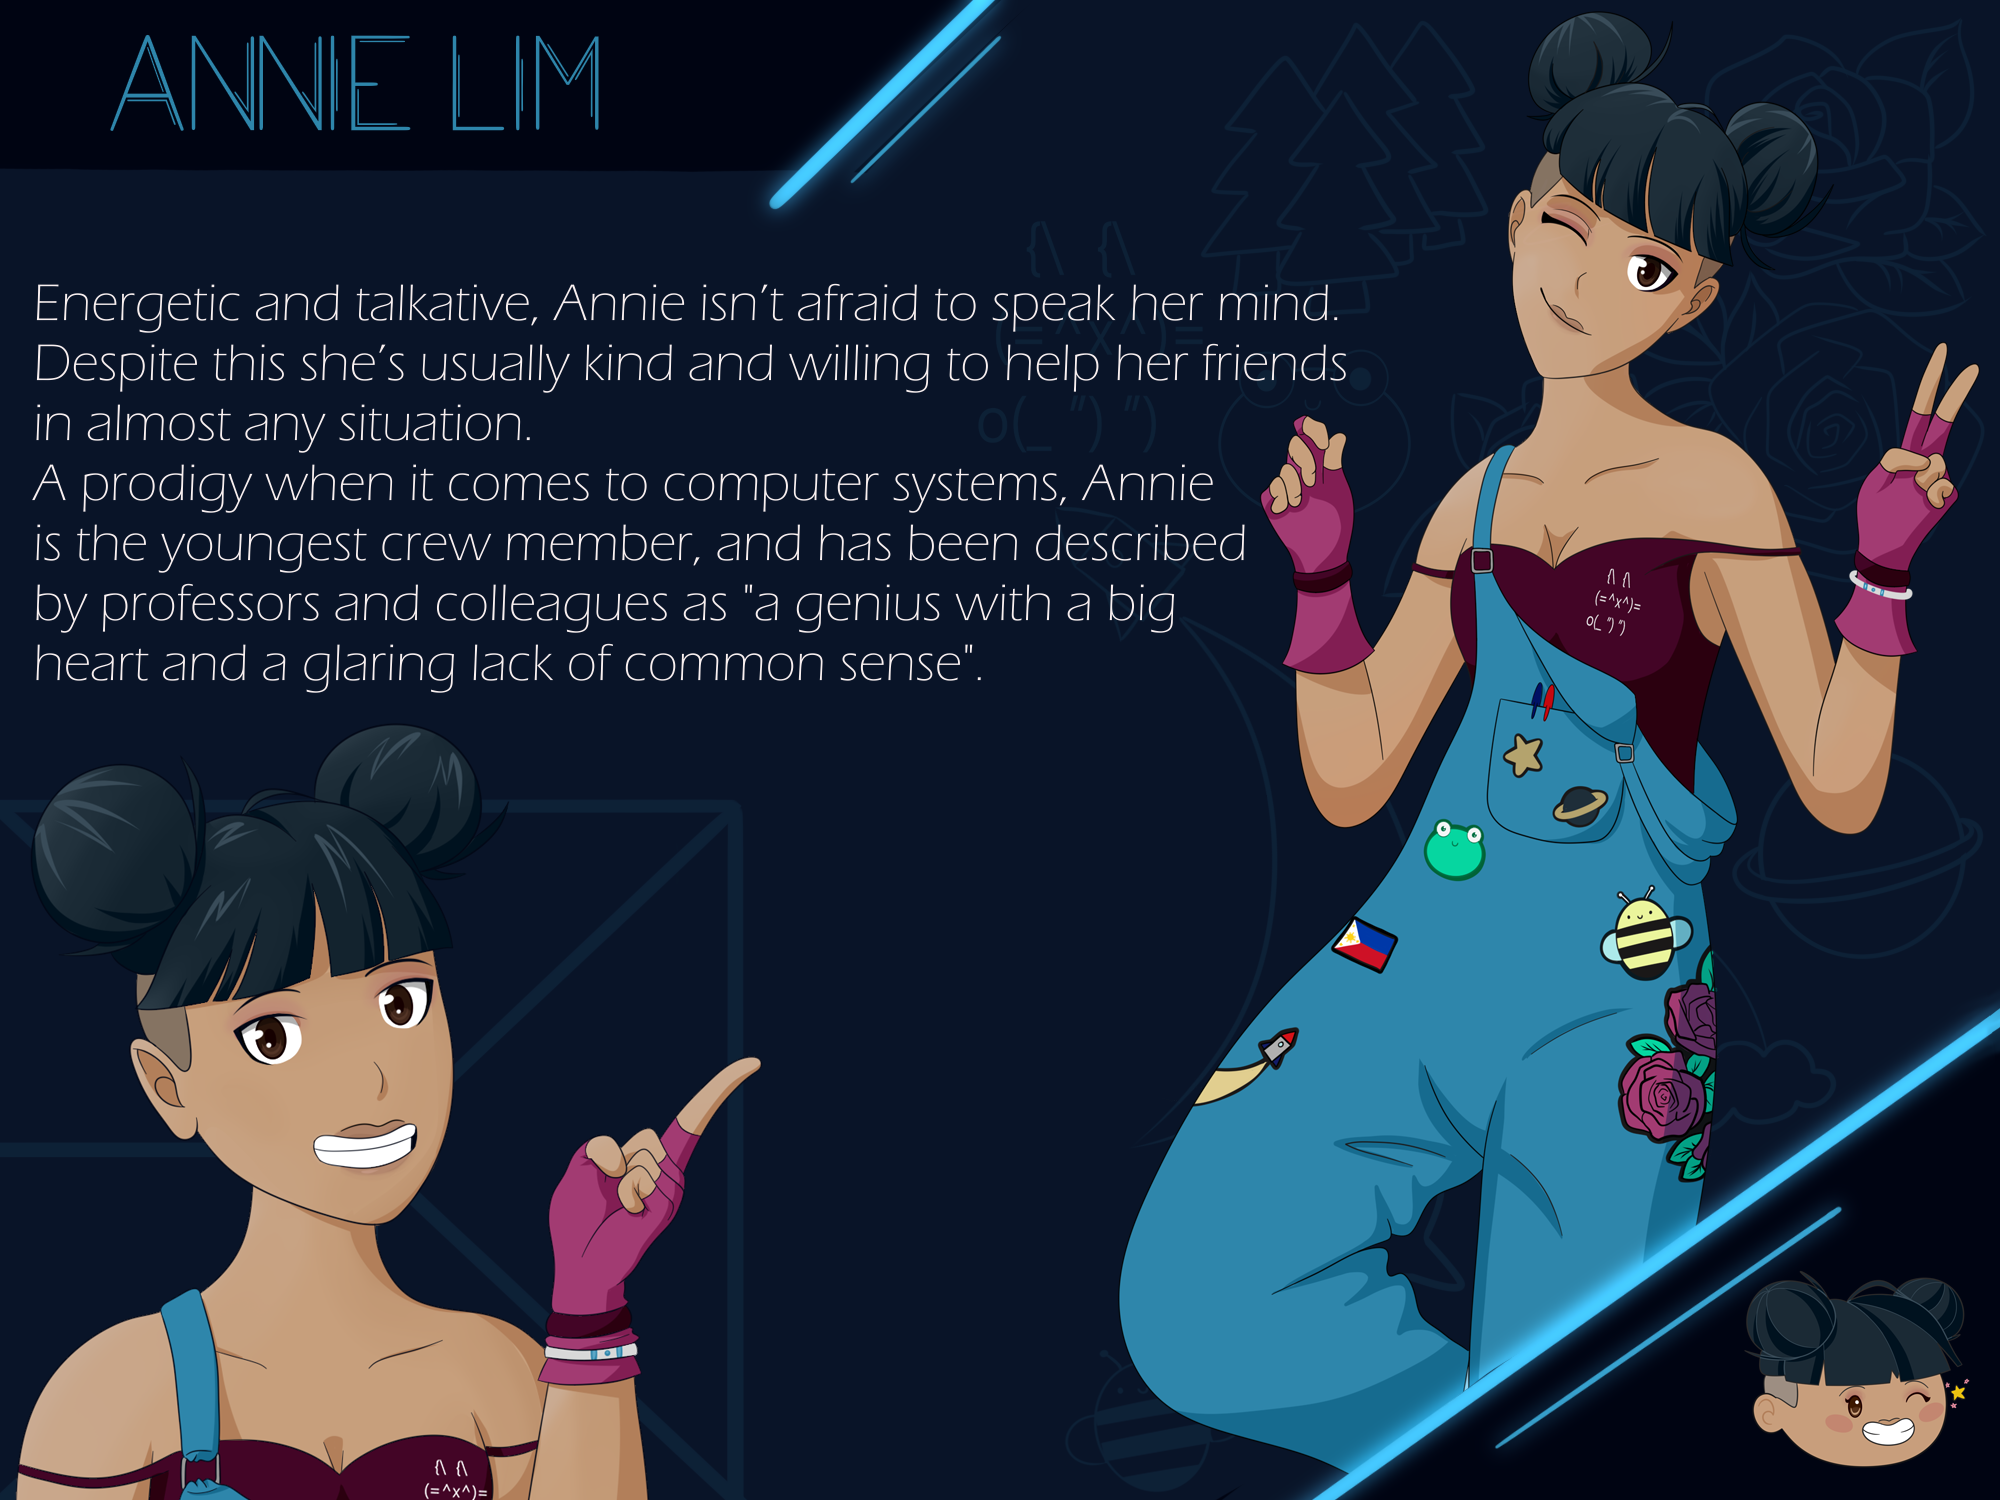 """A character profile for Annie Lim, including an anime-esque drawing of a young woman who is posing with her fingers in a peace sign and one eye closed in a wink. She is southeast Asian, and has dark hair that is tied up in twin buns with an undercut. She is wearing bright blue dungarees which are covered in various patches including a cute frog and bumble bee, and space iconography. Her top, which is purple, features a small rabbit made from ascii art. The image also features a description of her character """"Energetic and talkative, Annie isn't afraid to speak her mind, even if there isn't much of a filter in place. Despite this she's usually kind and willing to help her friends in almost any situation. A prodigy when it comes to computer systems, Annie is the youngest crew member, and has been described by professors and colleagues as a genius with a big heart and a glaring lack of common sense."""""""